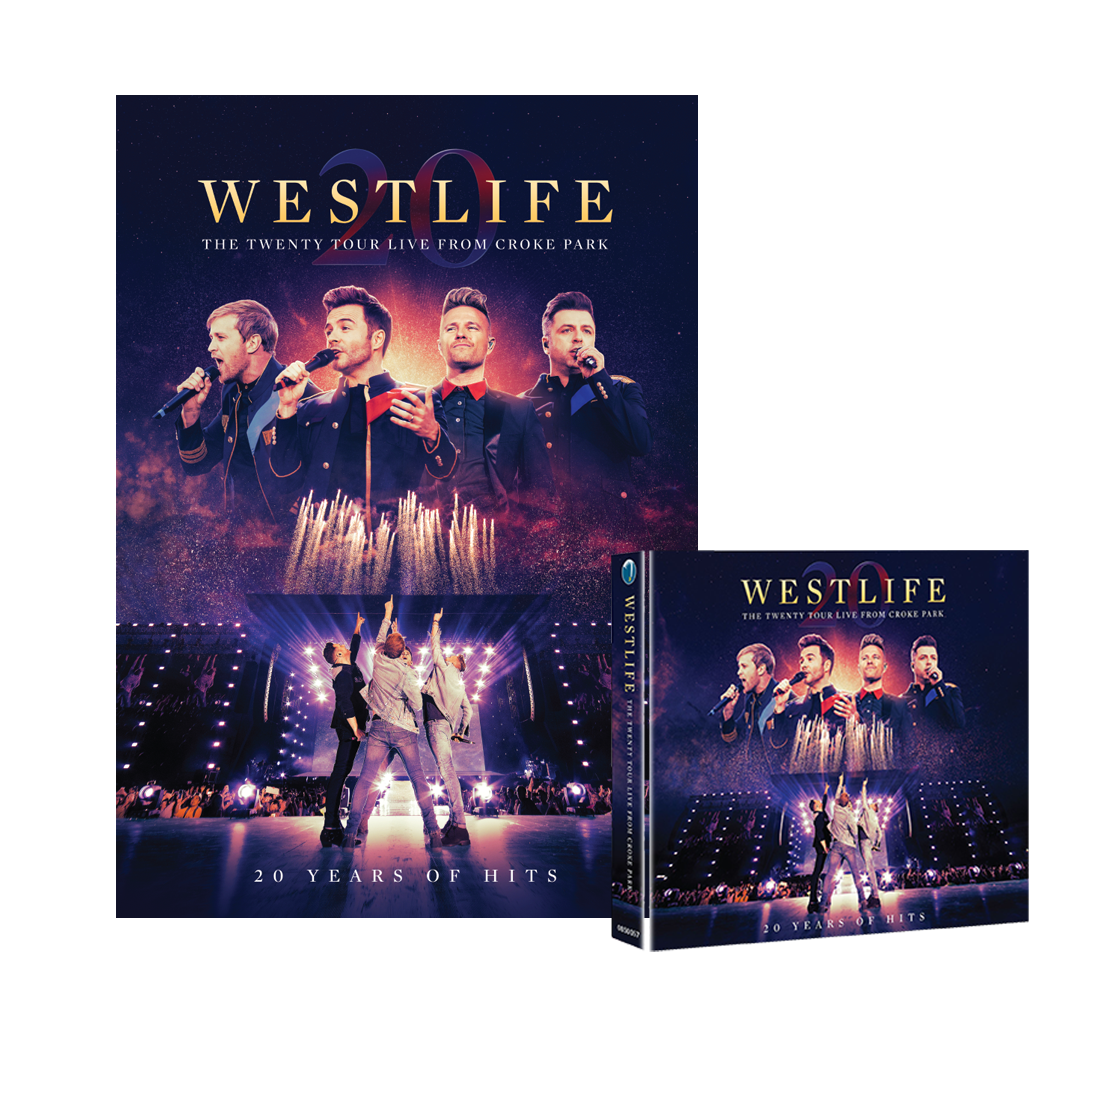 Westlife: THE TWENTY TOUR LIVE FROM CROKE PARK CD/DVD & Limited Edition Signed Print